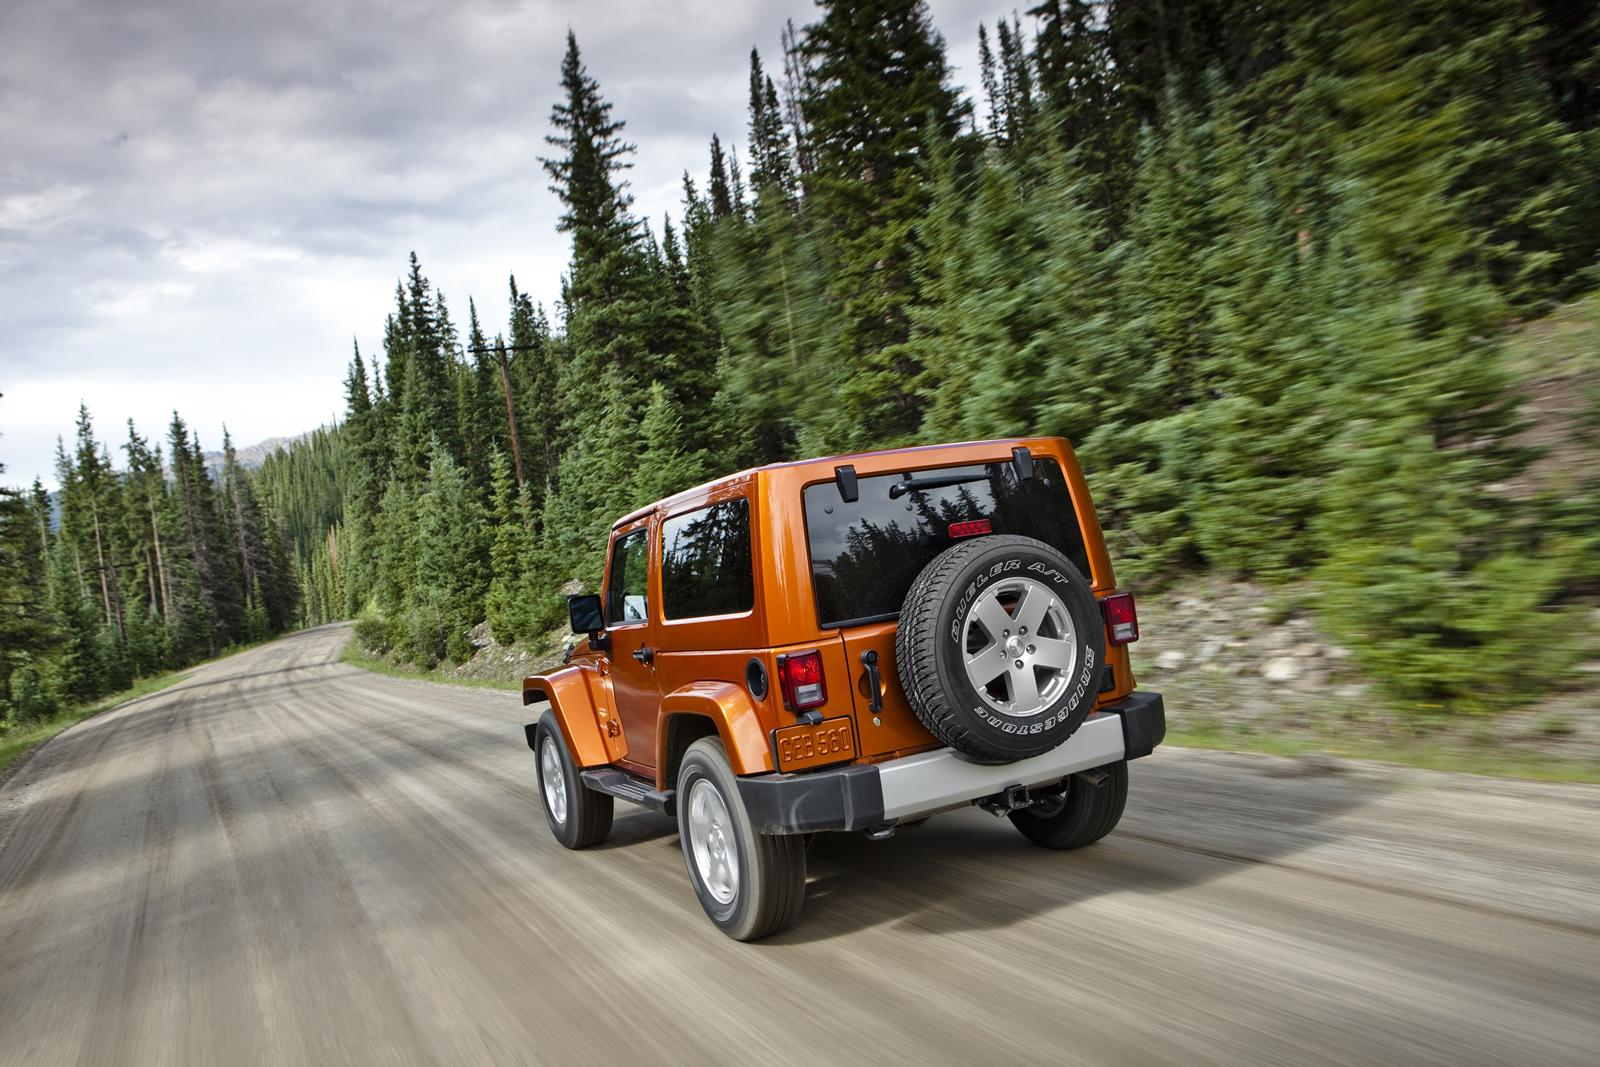 2012 Jeep Wrangler 16 2012 Jeep Wrangler with New Car Tuning Accessories – A Report